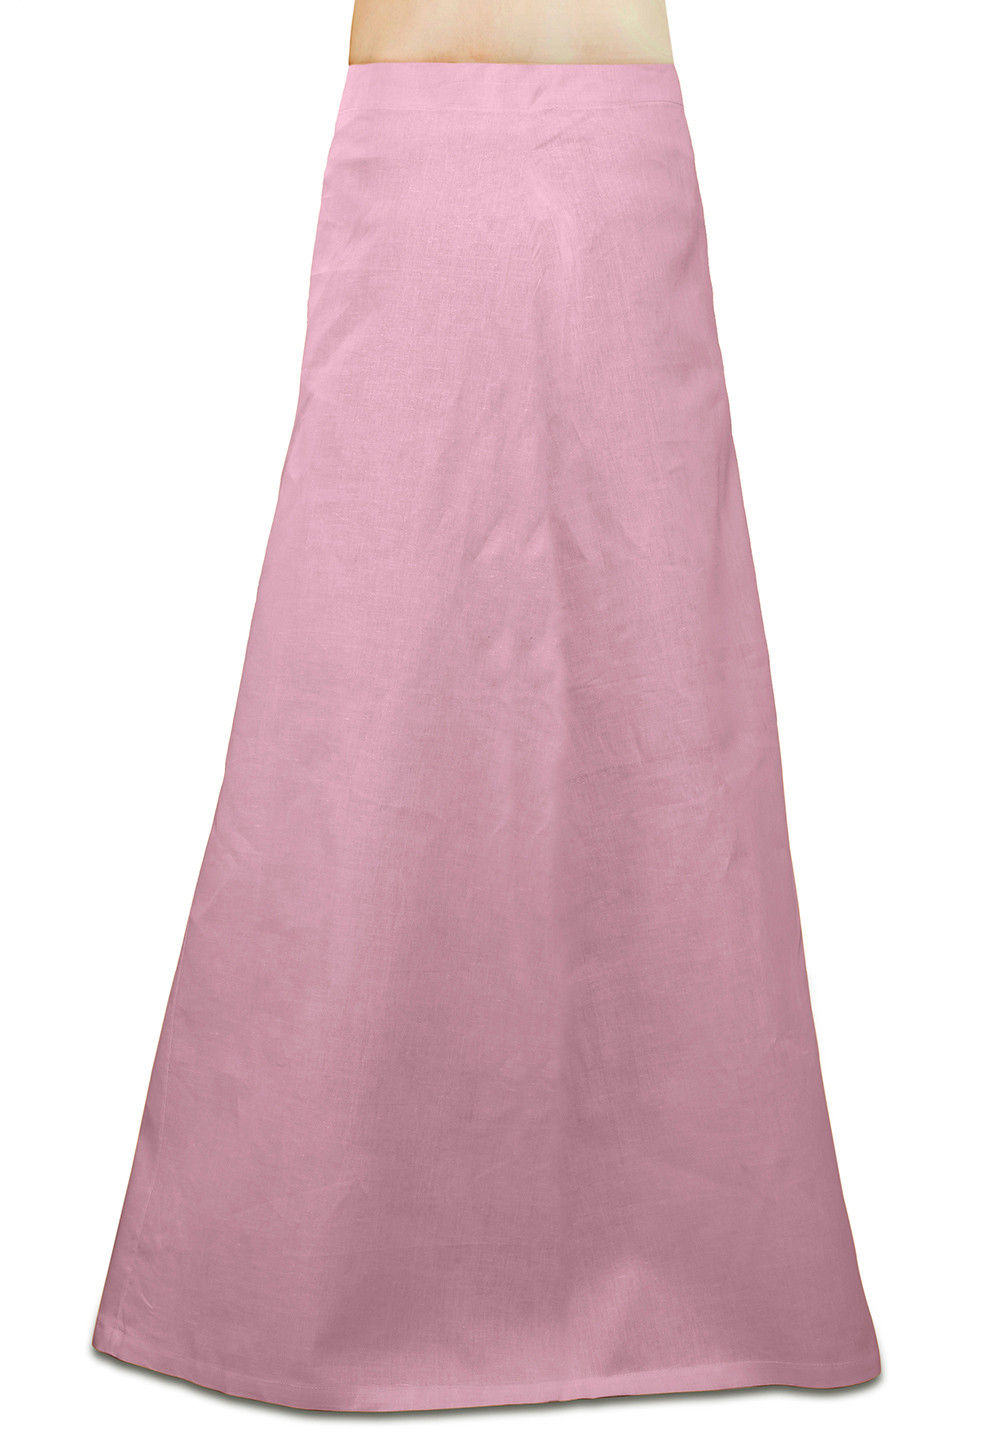 Cotton Petticoat in Baby Pink